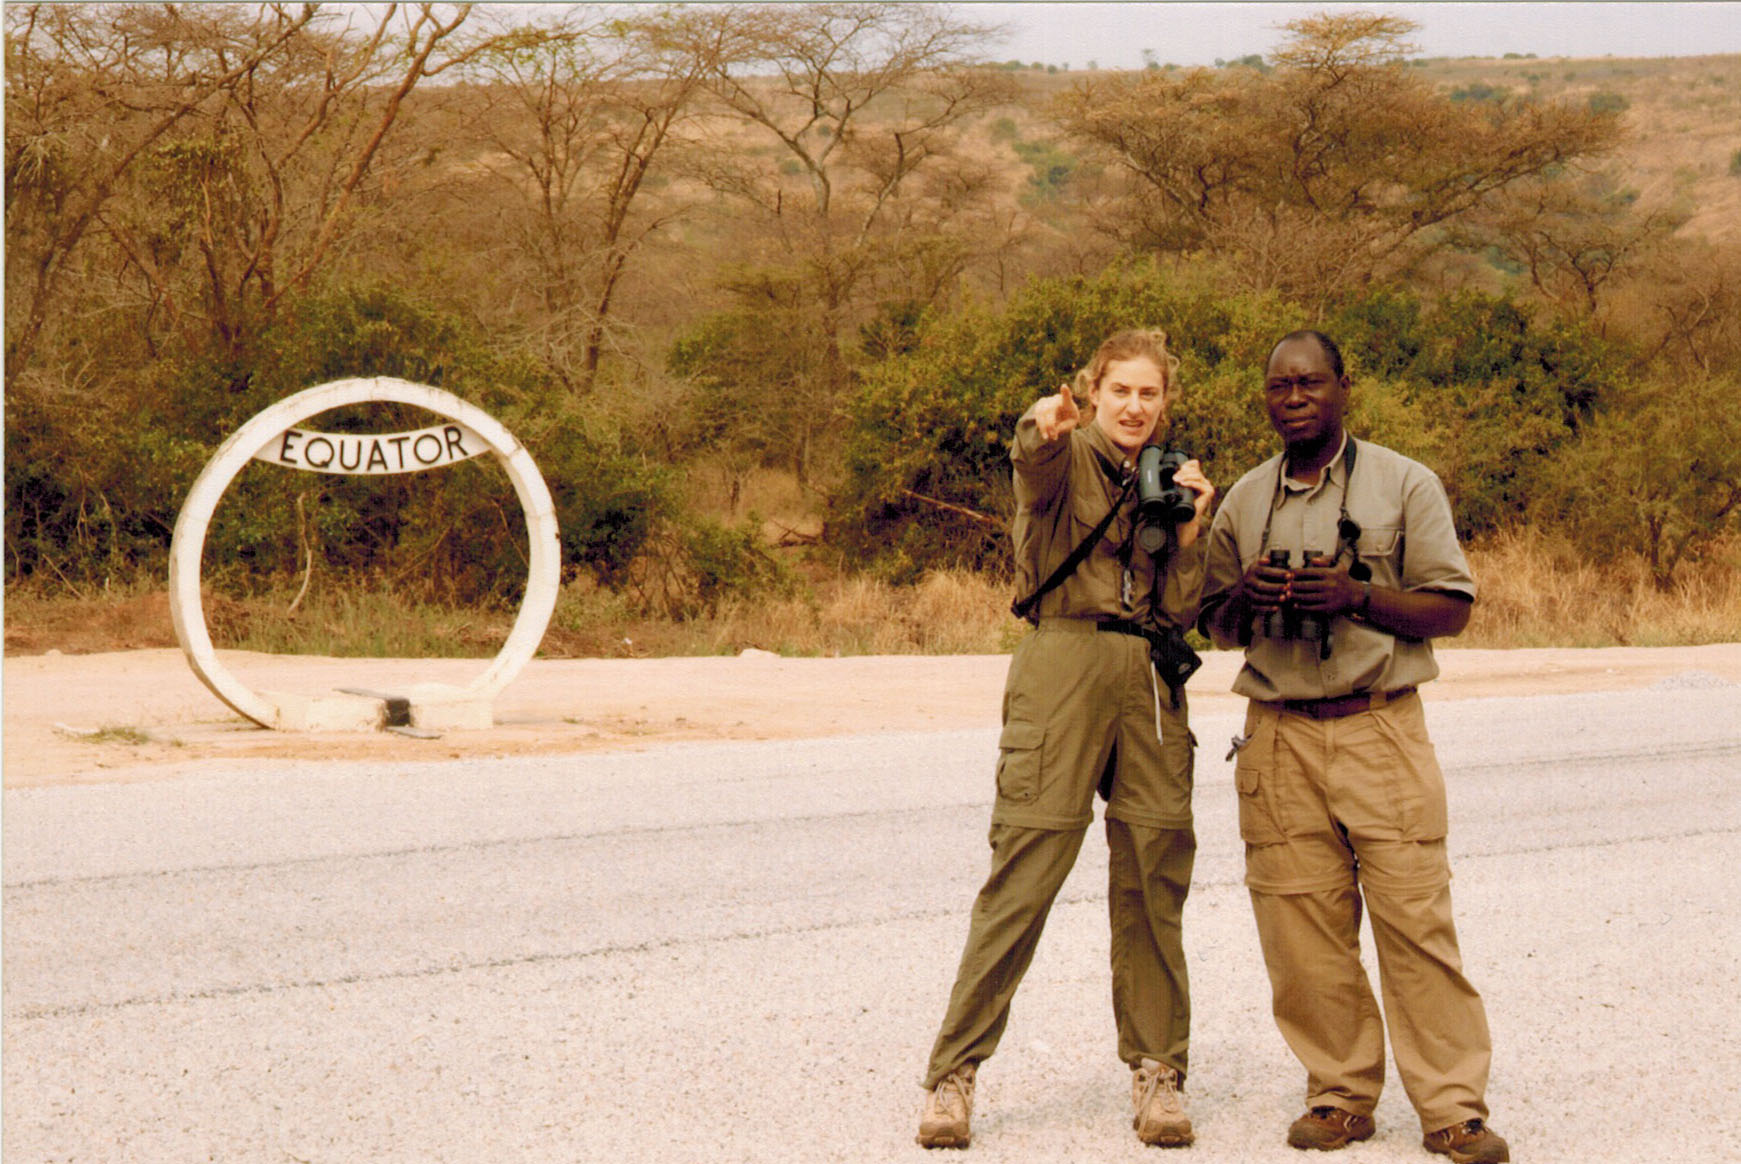 Christi and guide Ben at the Equator in Uganda